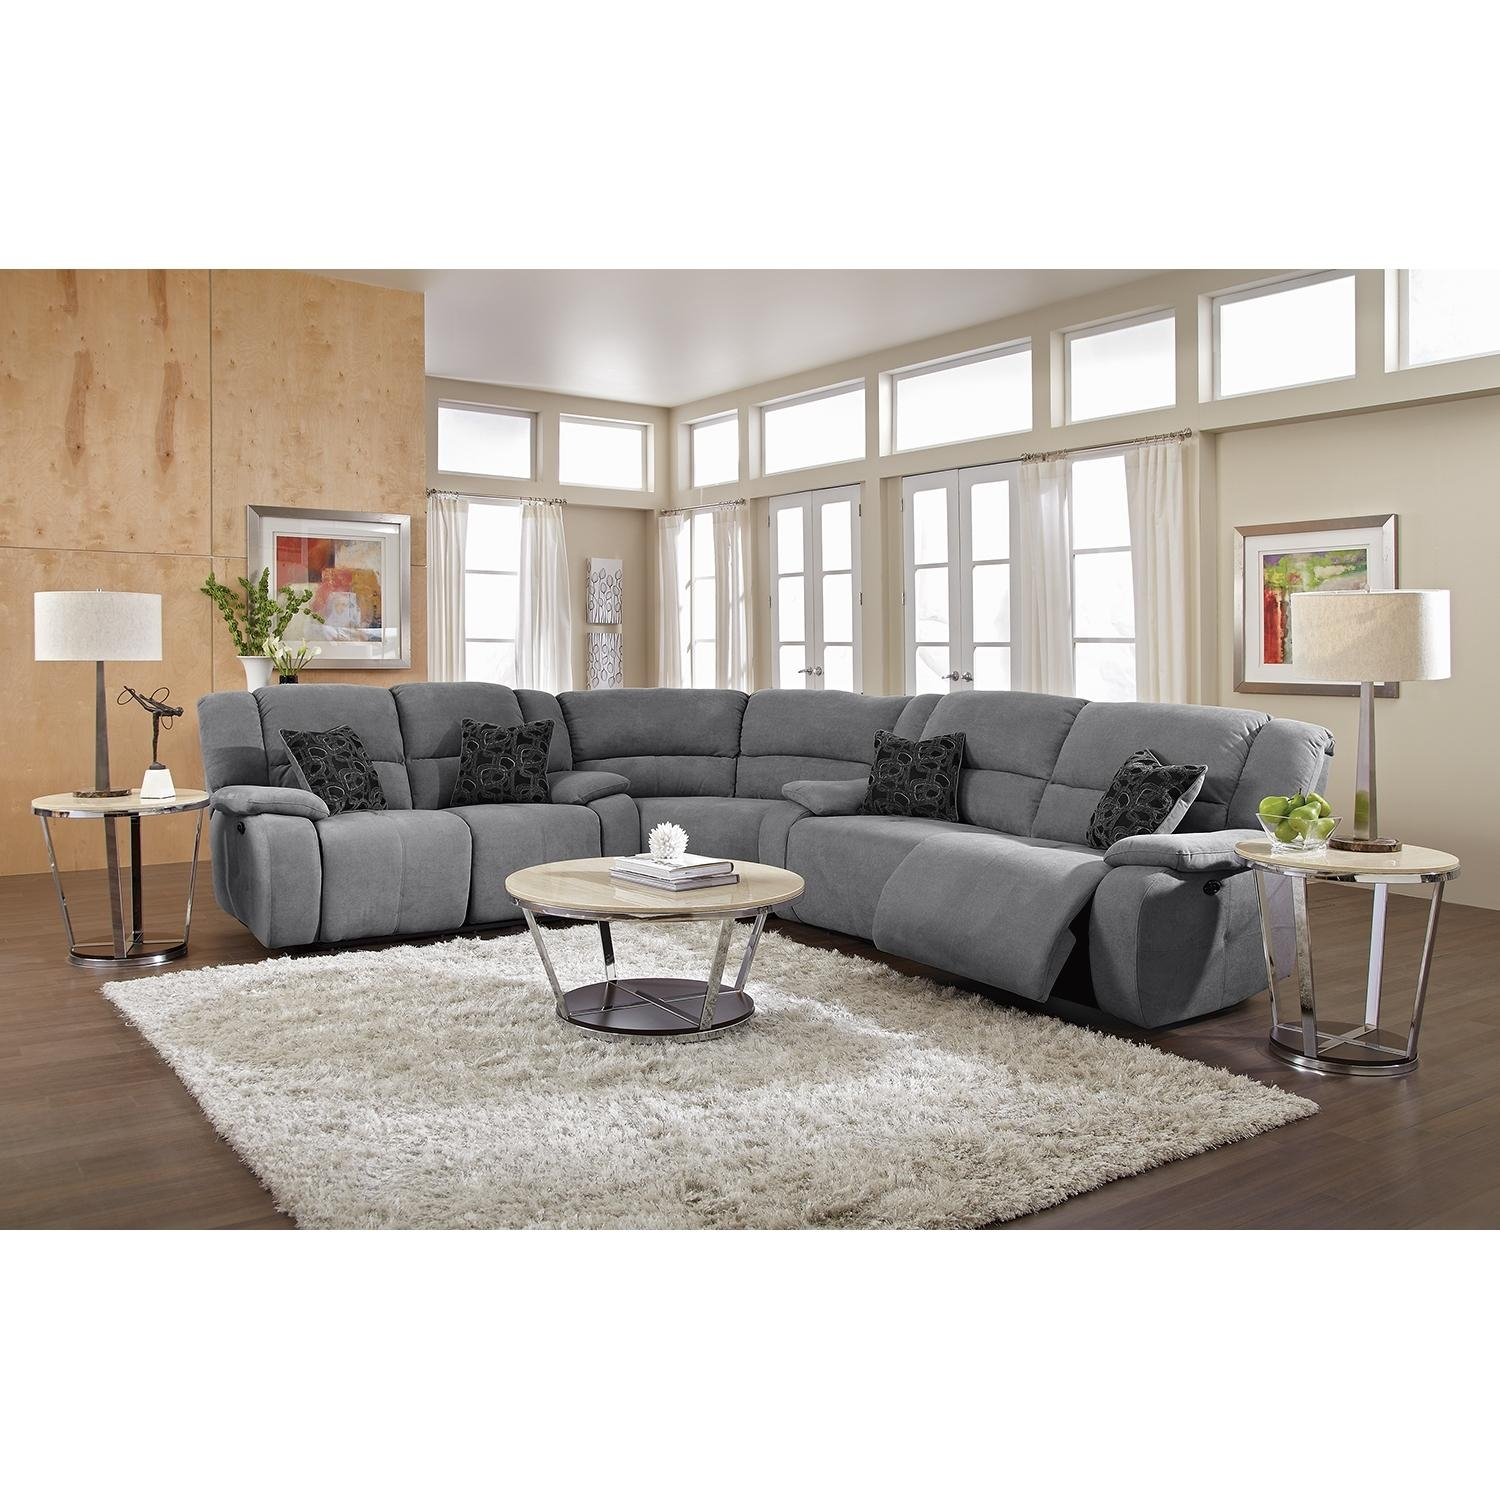 Sectional Sofa For Small Spaces 20 Top Sectional Sofas For Small Spaces With Recliners